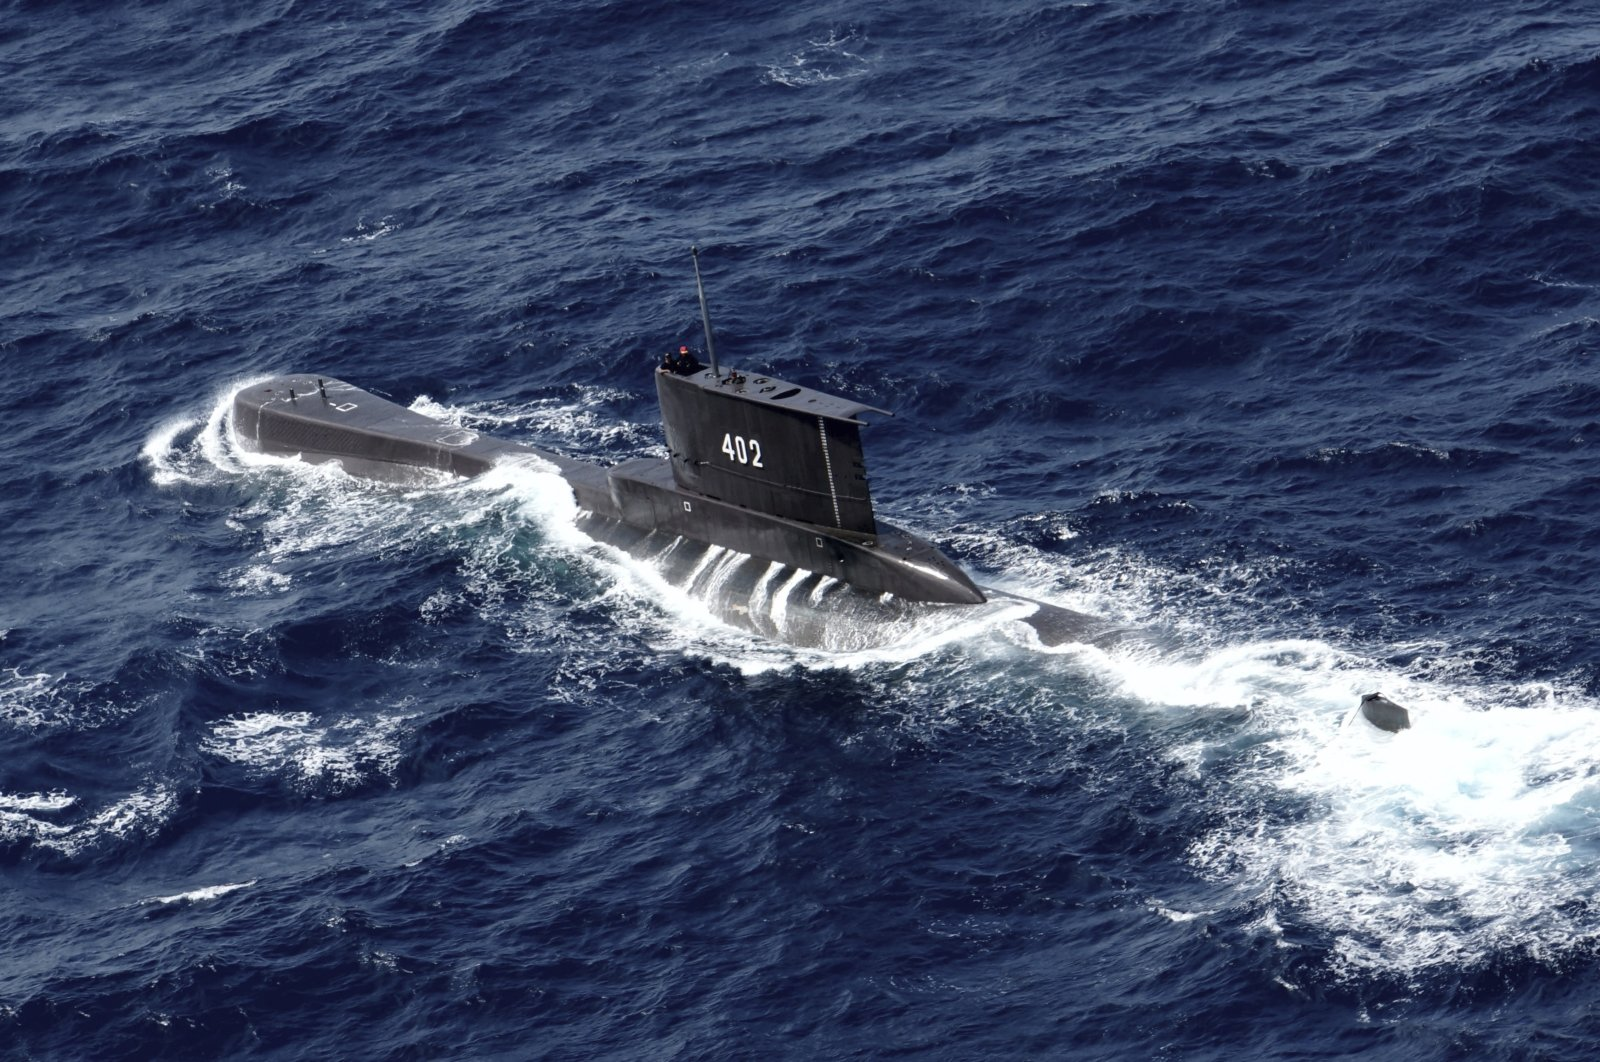 Indonesian Navy submarine KRI Nanggala sails in the waters off Tuban, East Java, Indonesia, as seen in this aerial photo taken from an Indonesian Navy helicopter from the 400 Air Squadron, Oct. 6, 2014. (AP Photo)